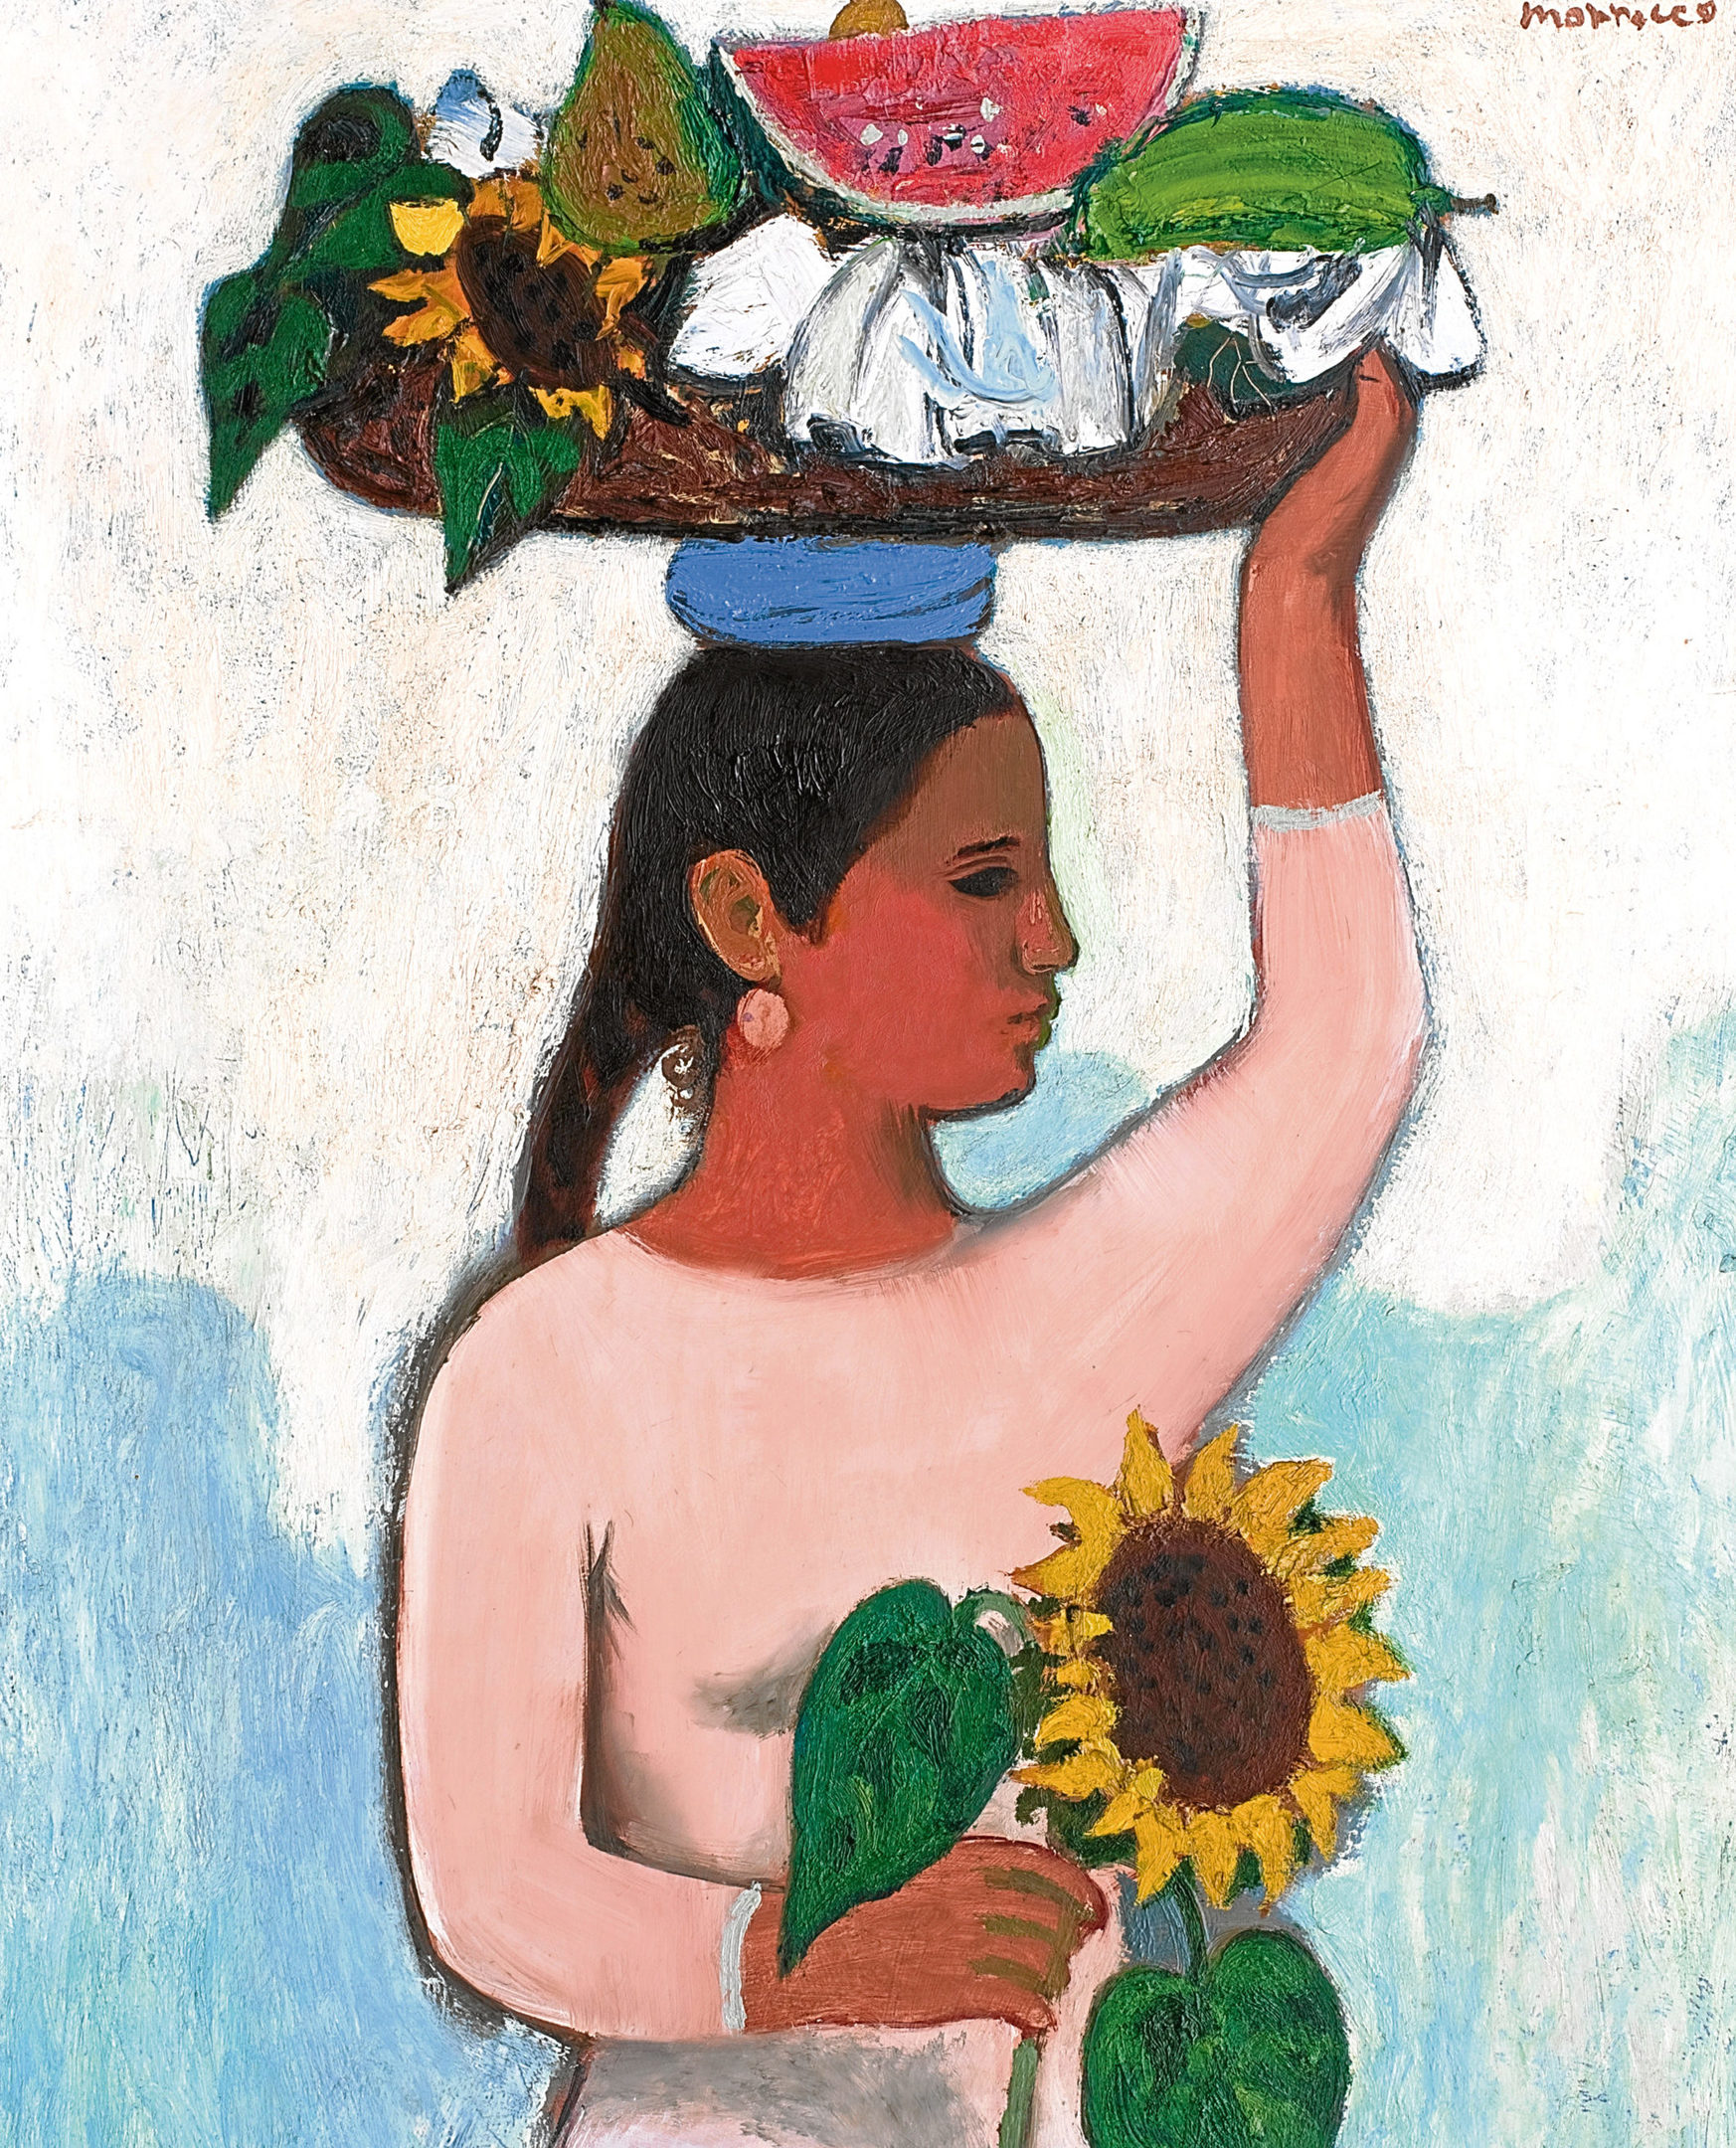 Alberto Morrocco's Girl with a Sunflower